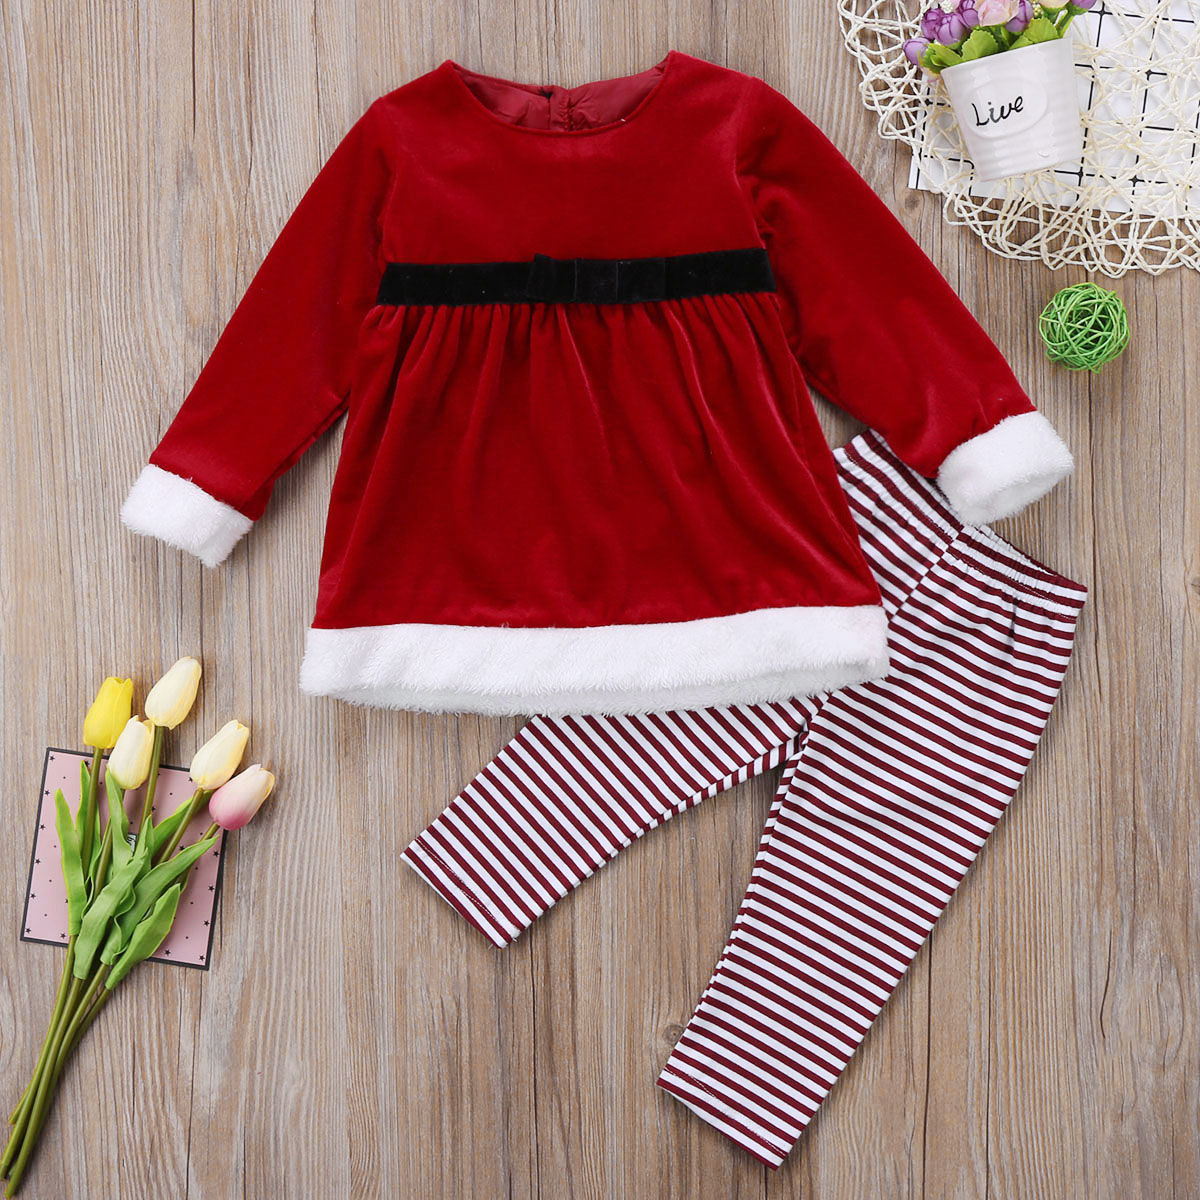 Toddler Kid Baby Boy Girl Top Sweater Dress Pants Xmas Outfit Clothes pudcoco0-4Y Baby Boys Girls Warm winter autumn XMAS xmas santa claus 1st brown top baby girl pettiskirt outfit 1 8y mapsa0036